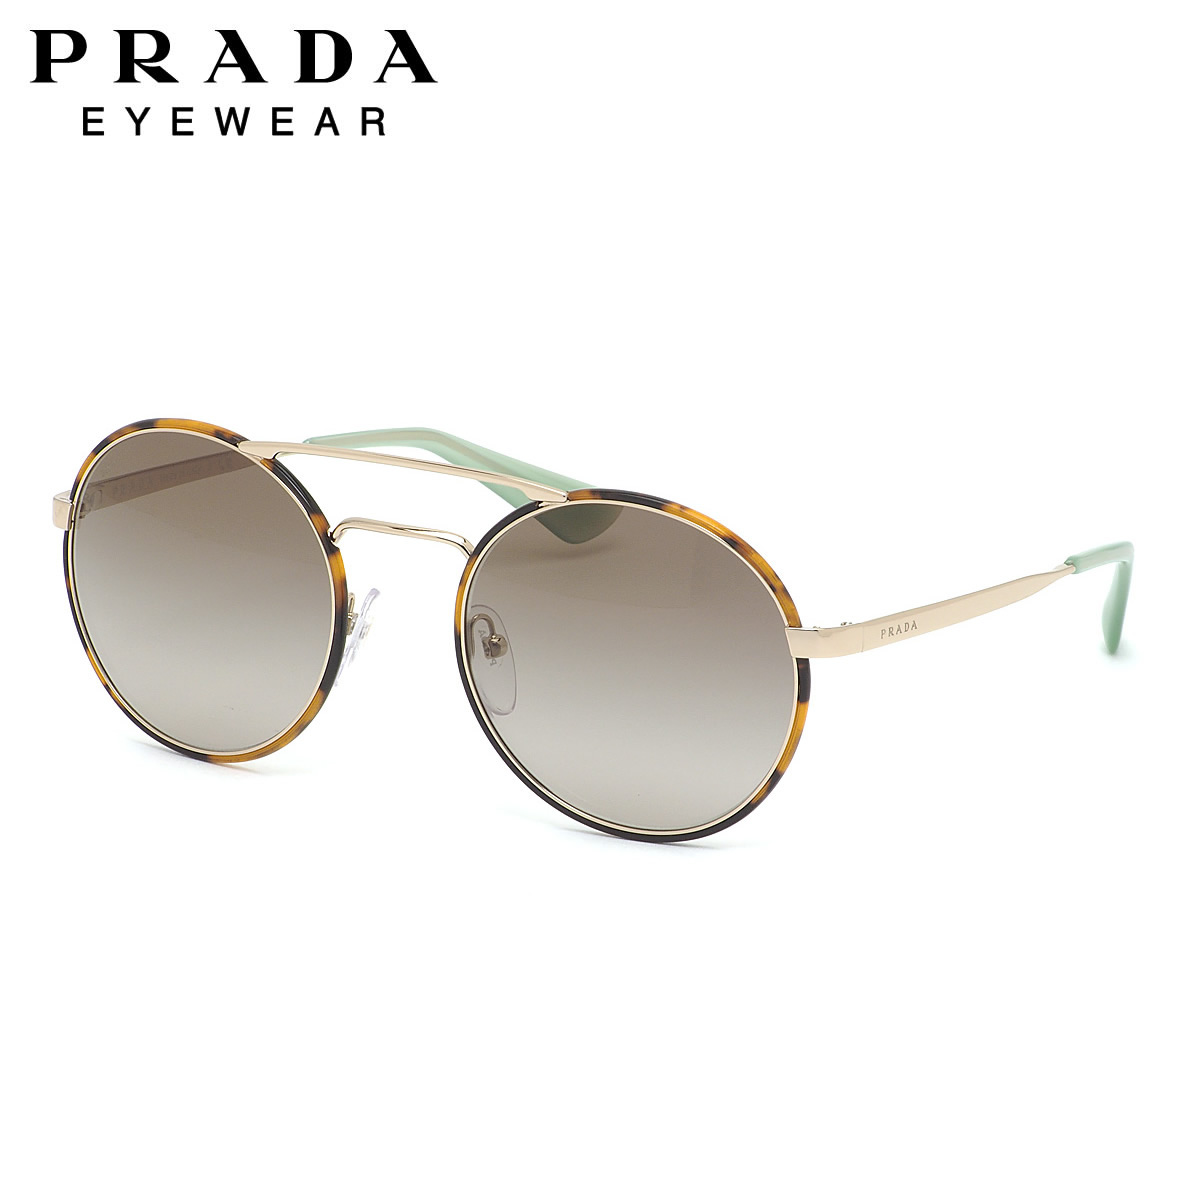 1df89b906e ... women prada round sunglasses 9462e 4ec9f  italy 102 time limited points  up to 35 times up to 10 6 thursday 159 prada